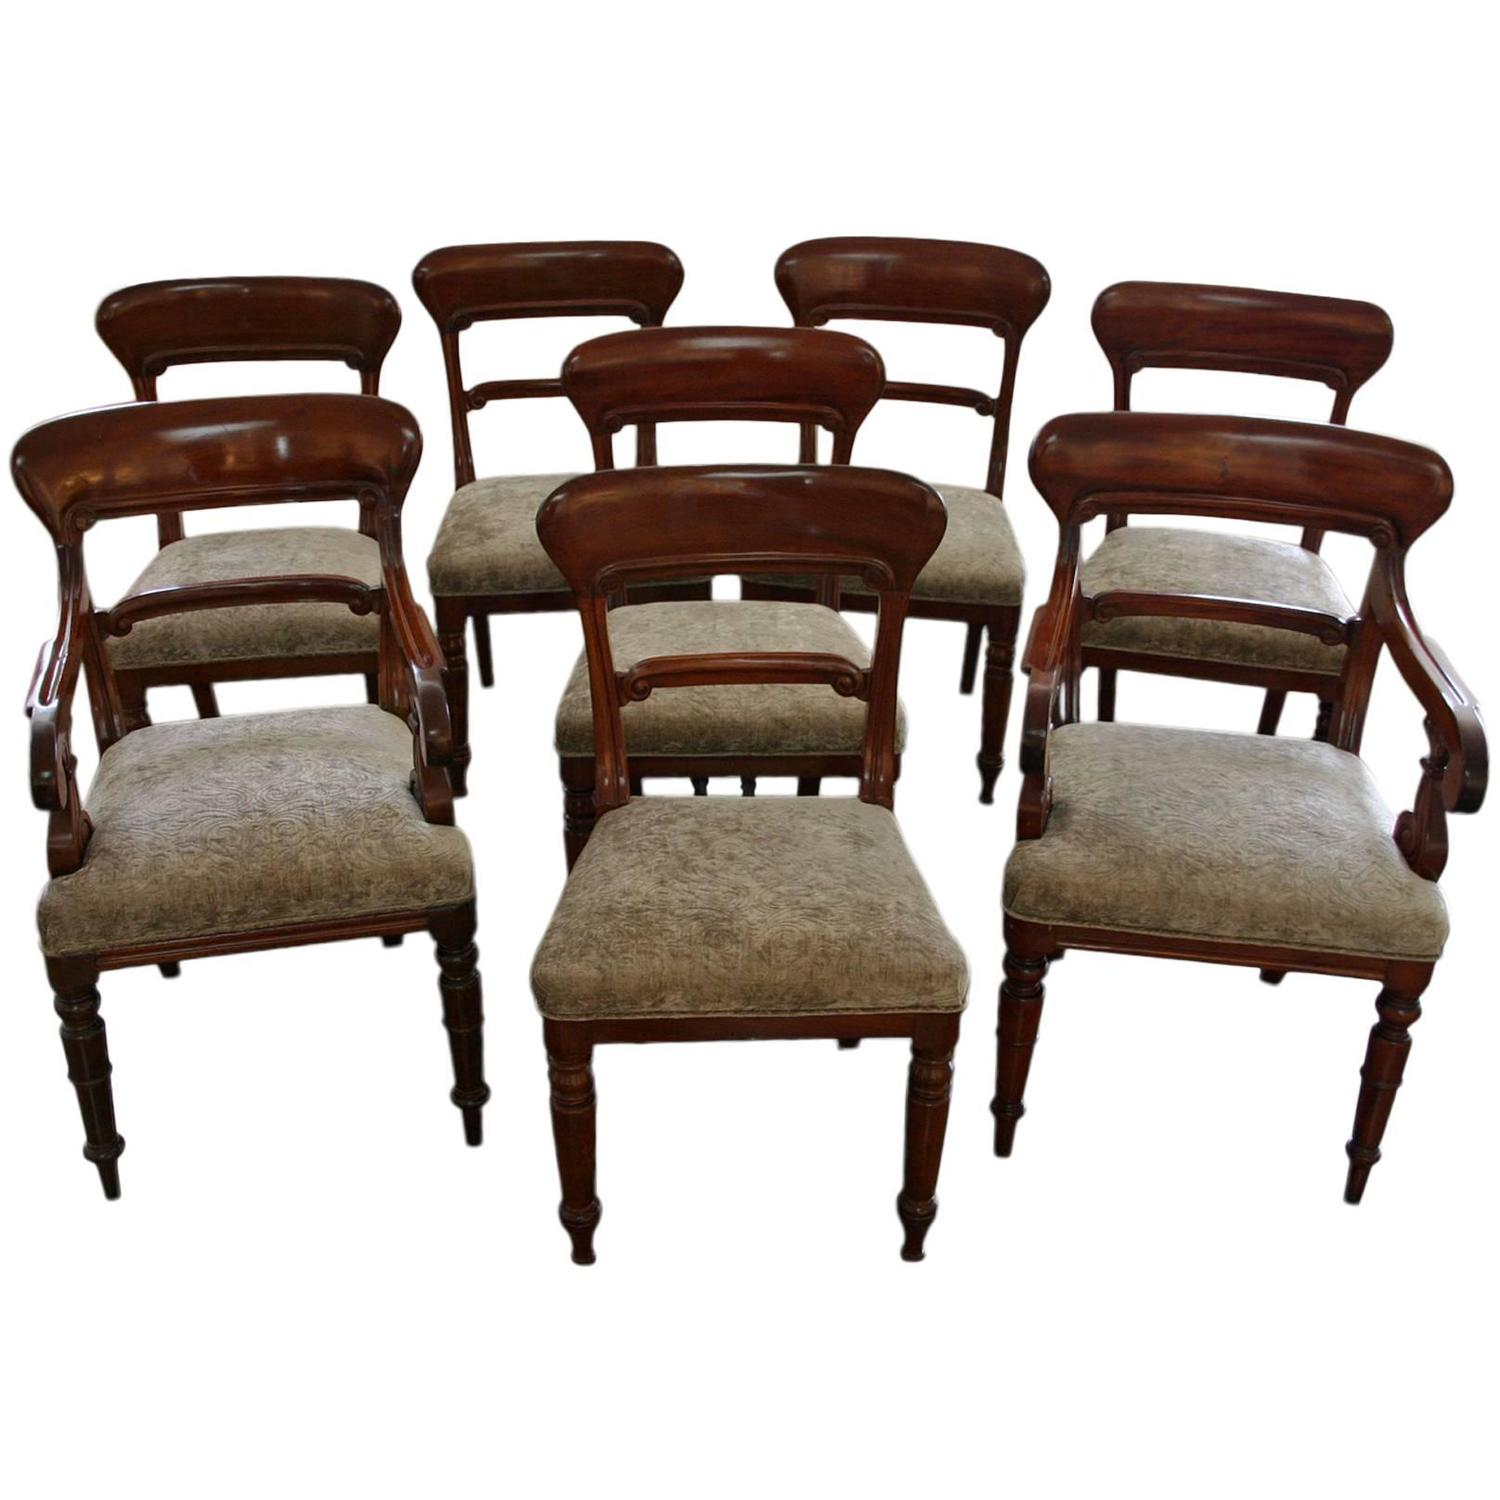 Set of Eight Victorian Mahogany Dining Chairs For Sale at  : 3583182z from www.1stdibs.com size 1500 x 1500 jpeg 136kB